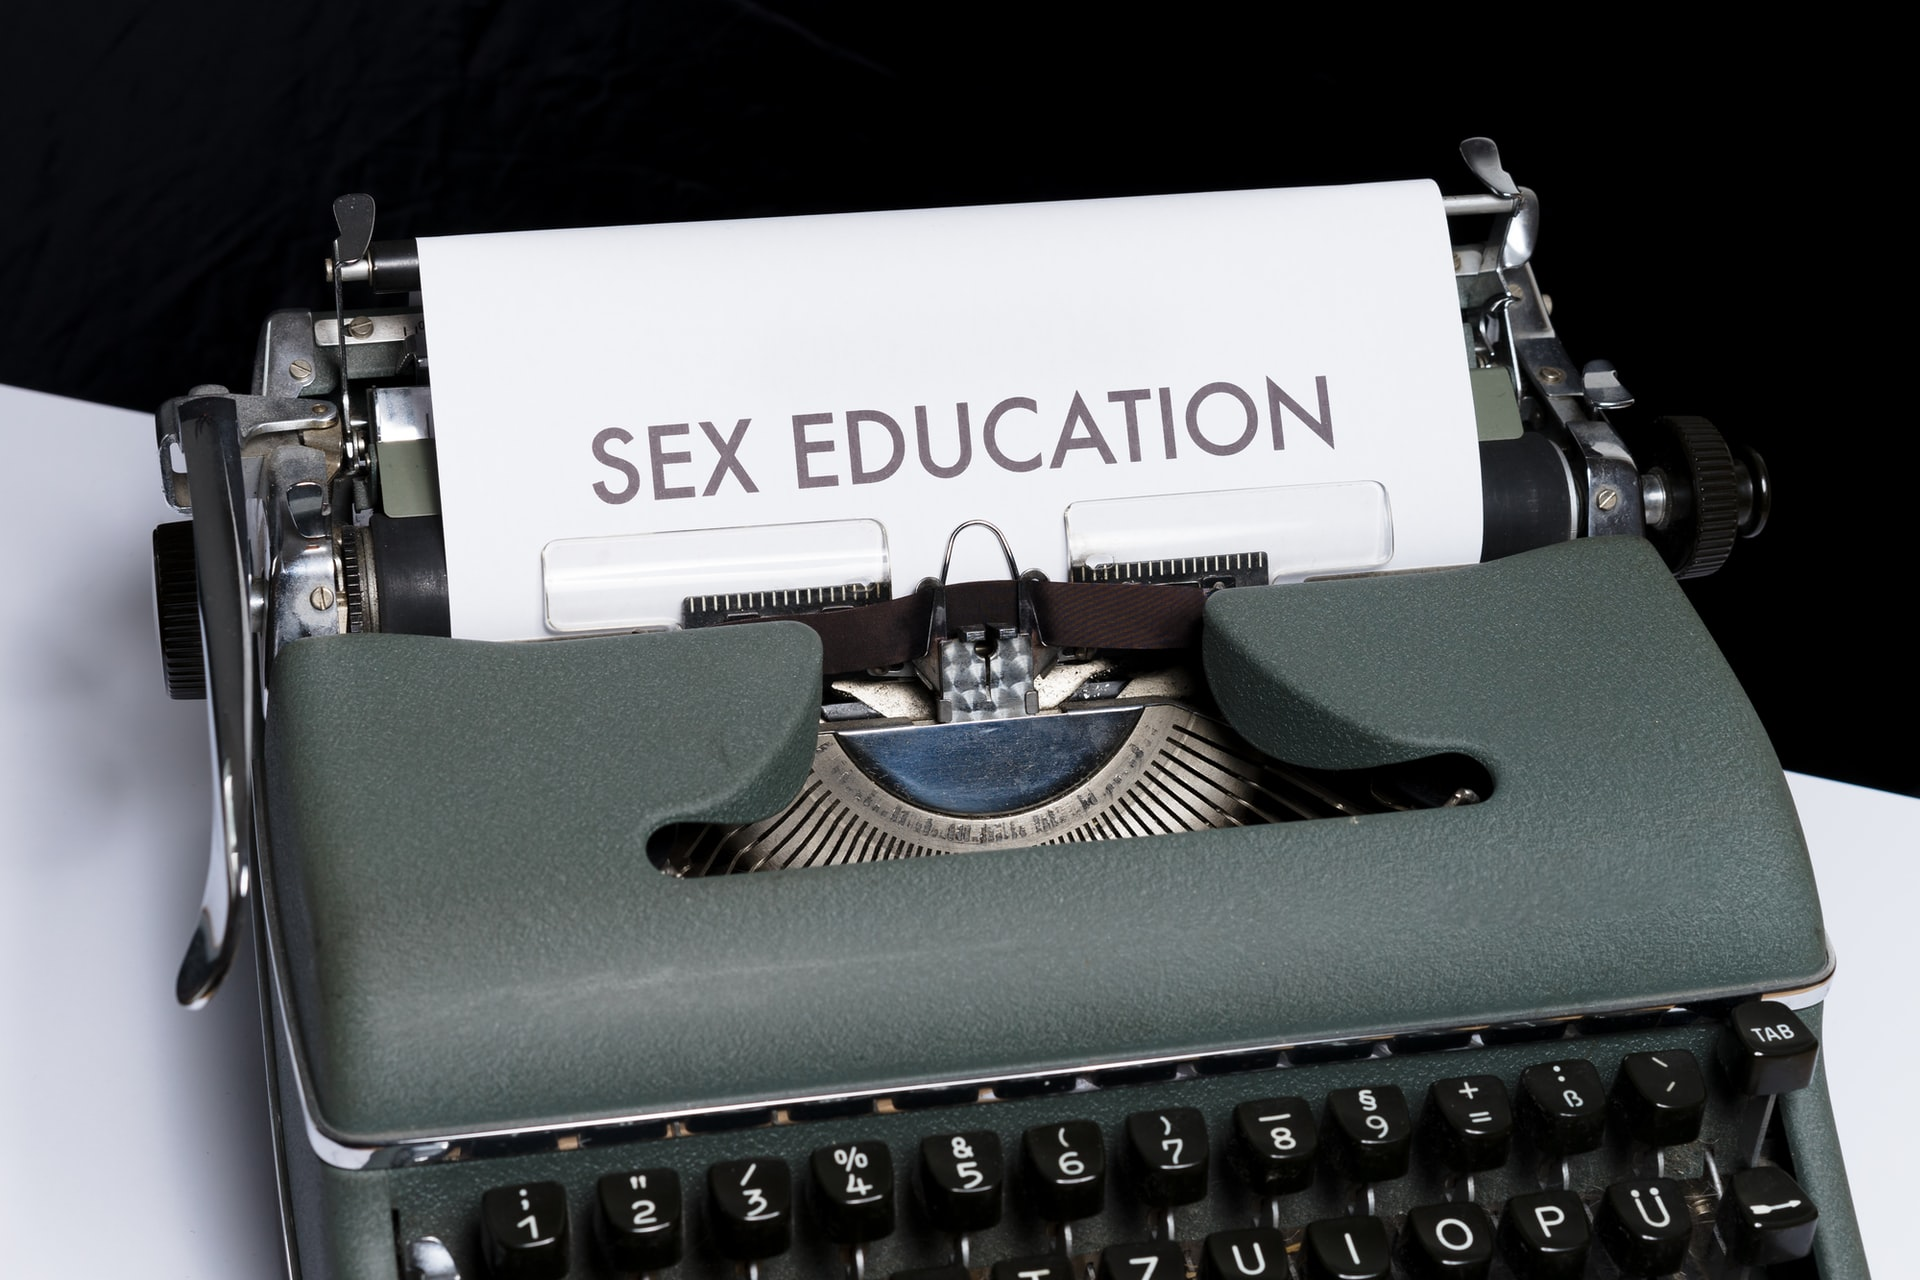 Why Sex Education Should Be Taught in Schools